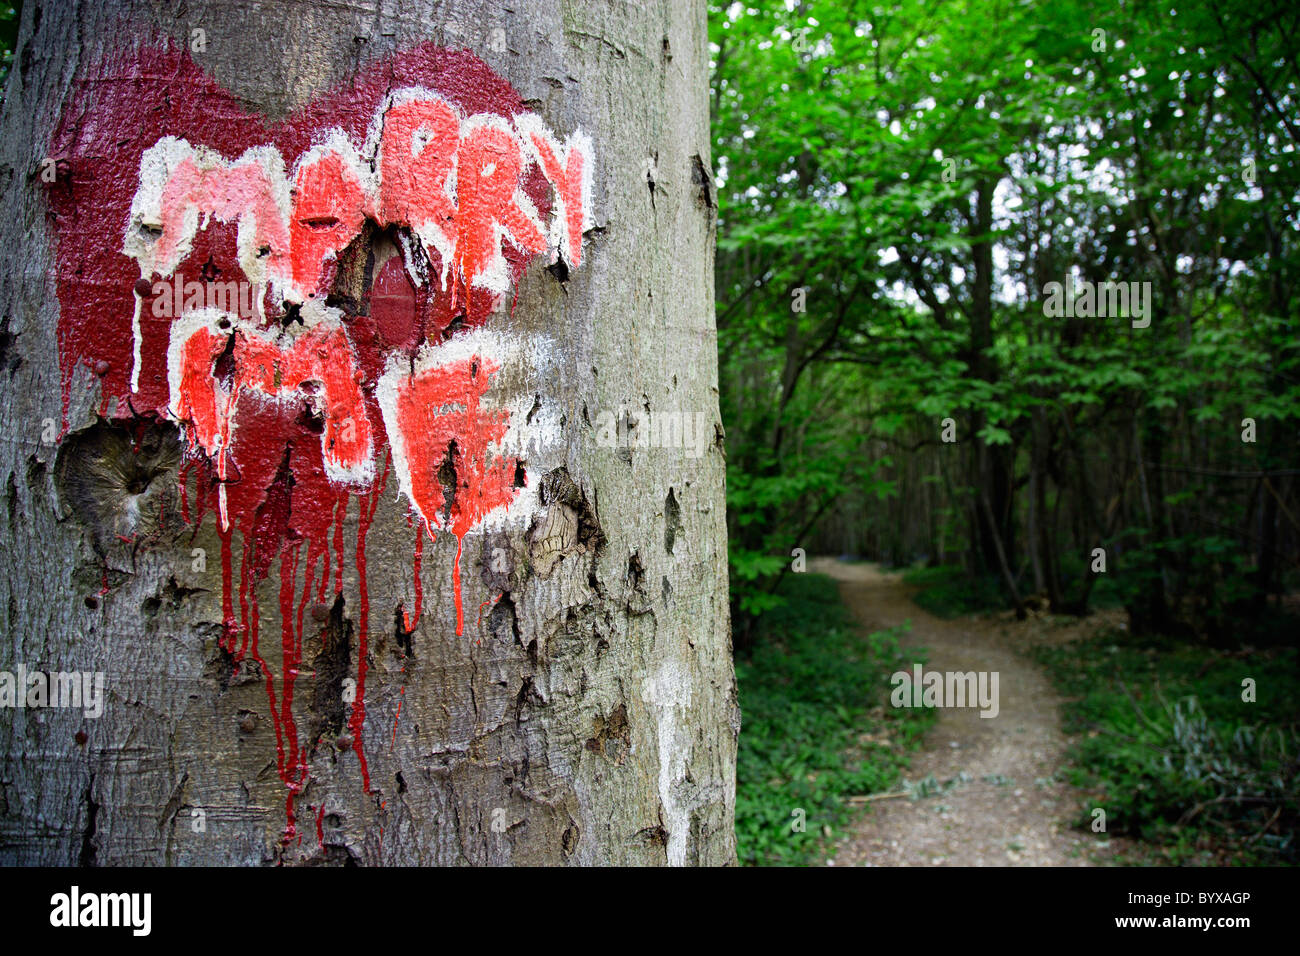 ENGLAND West Sussex Chichester Red Valentine heart painted on trunk of a tree in a forest with the words Marry Me - Stock Image